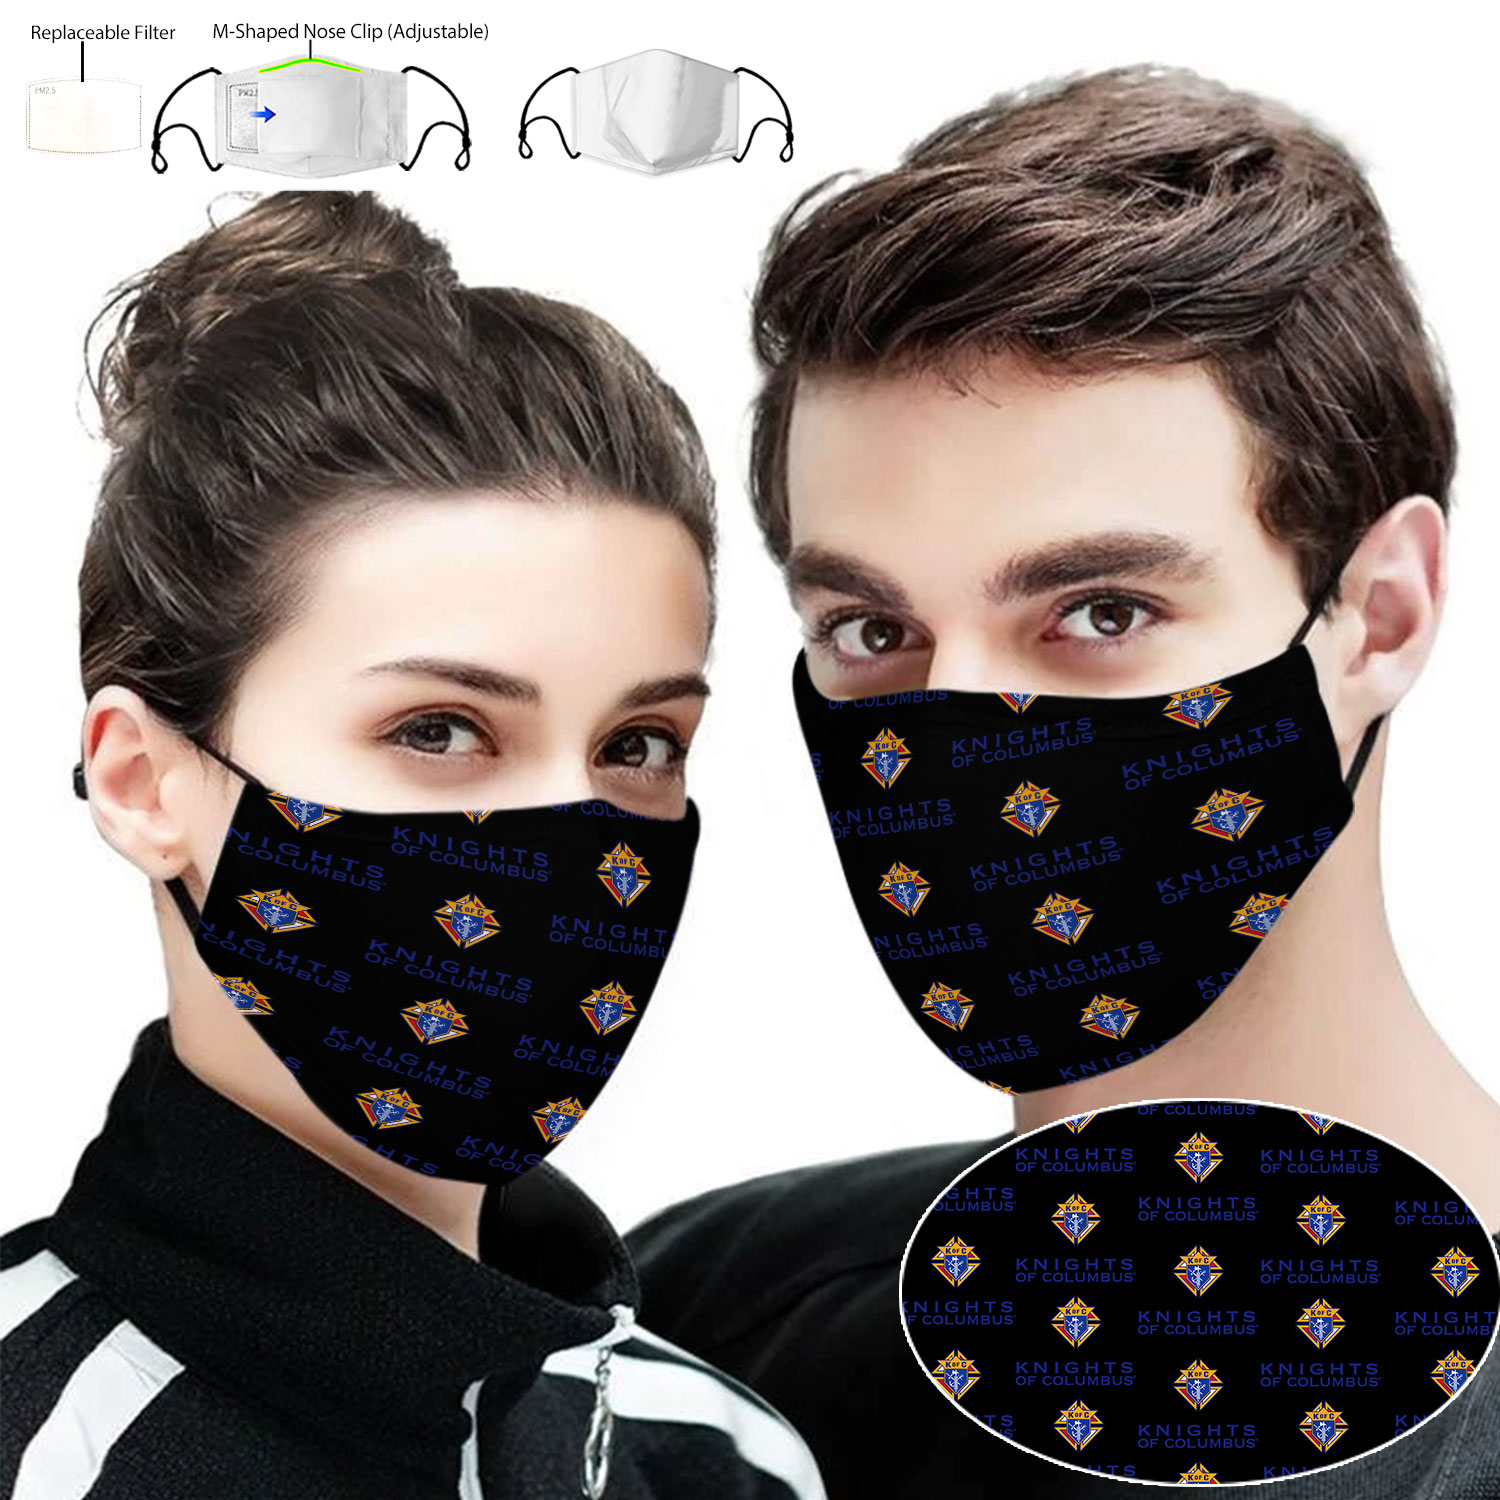 Knights of columbus full printing face mask 2